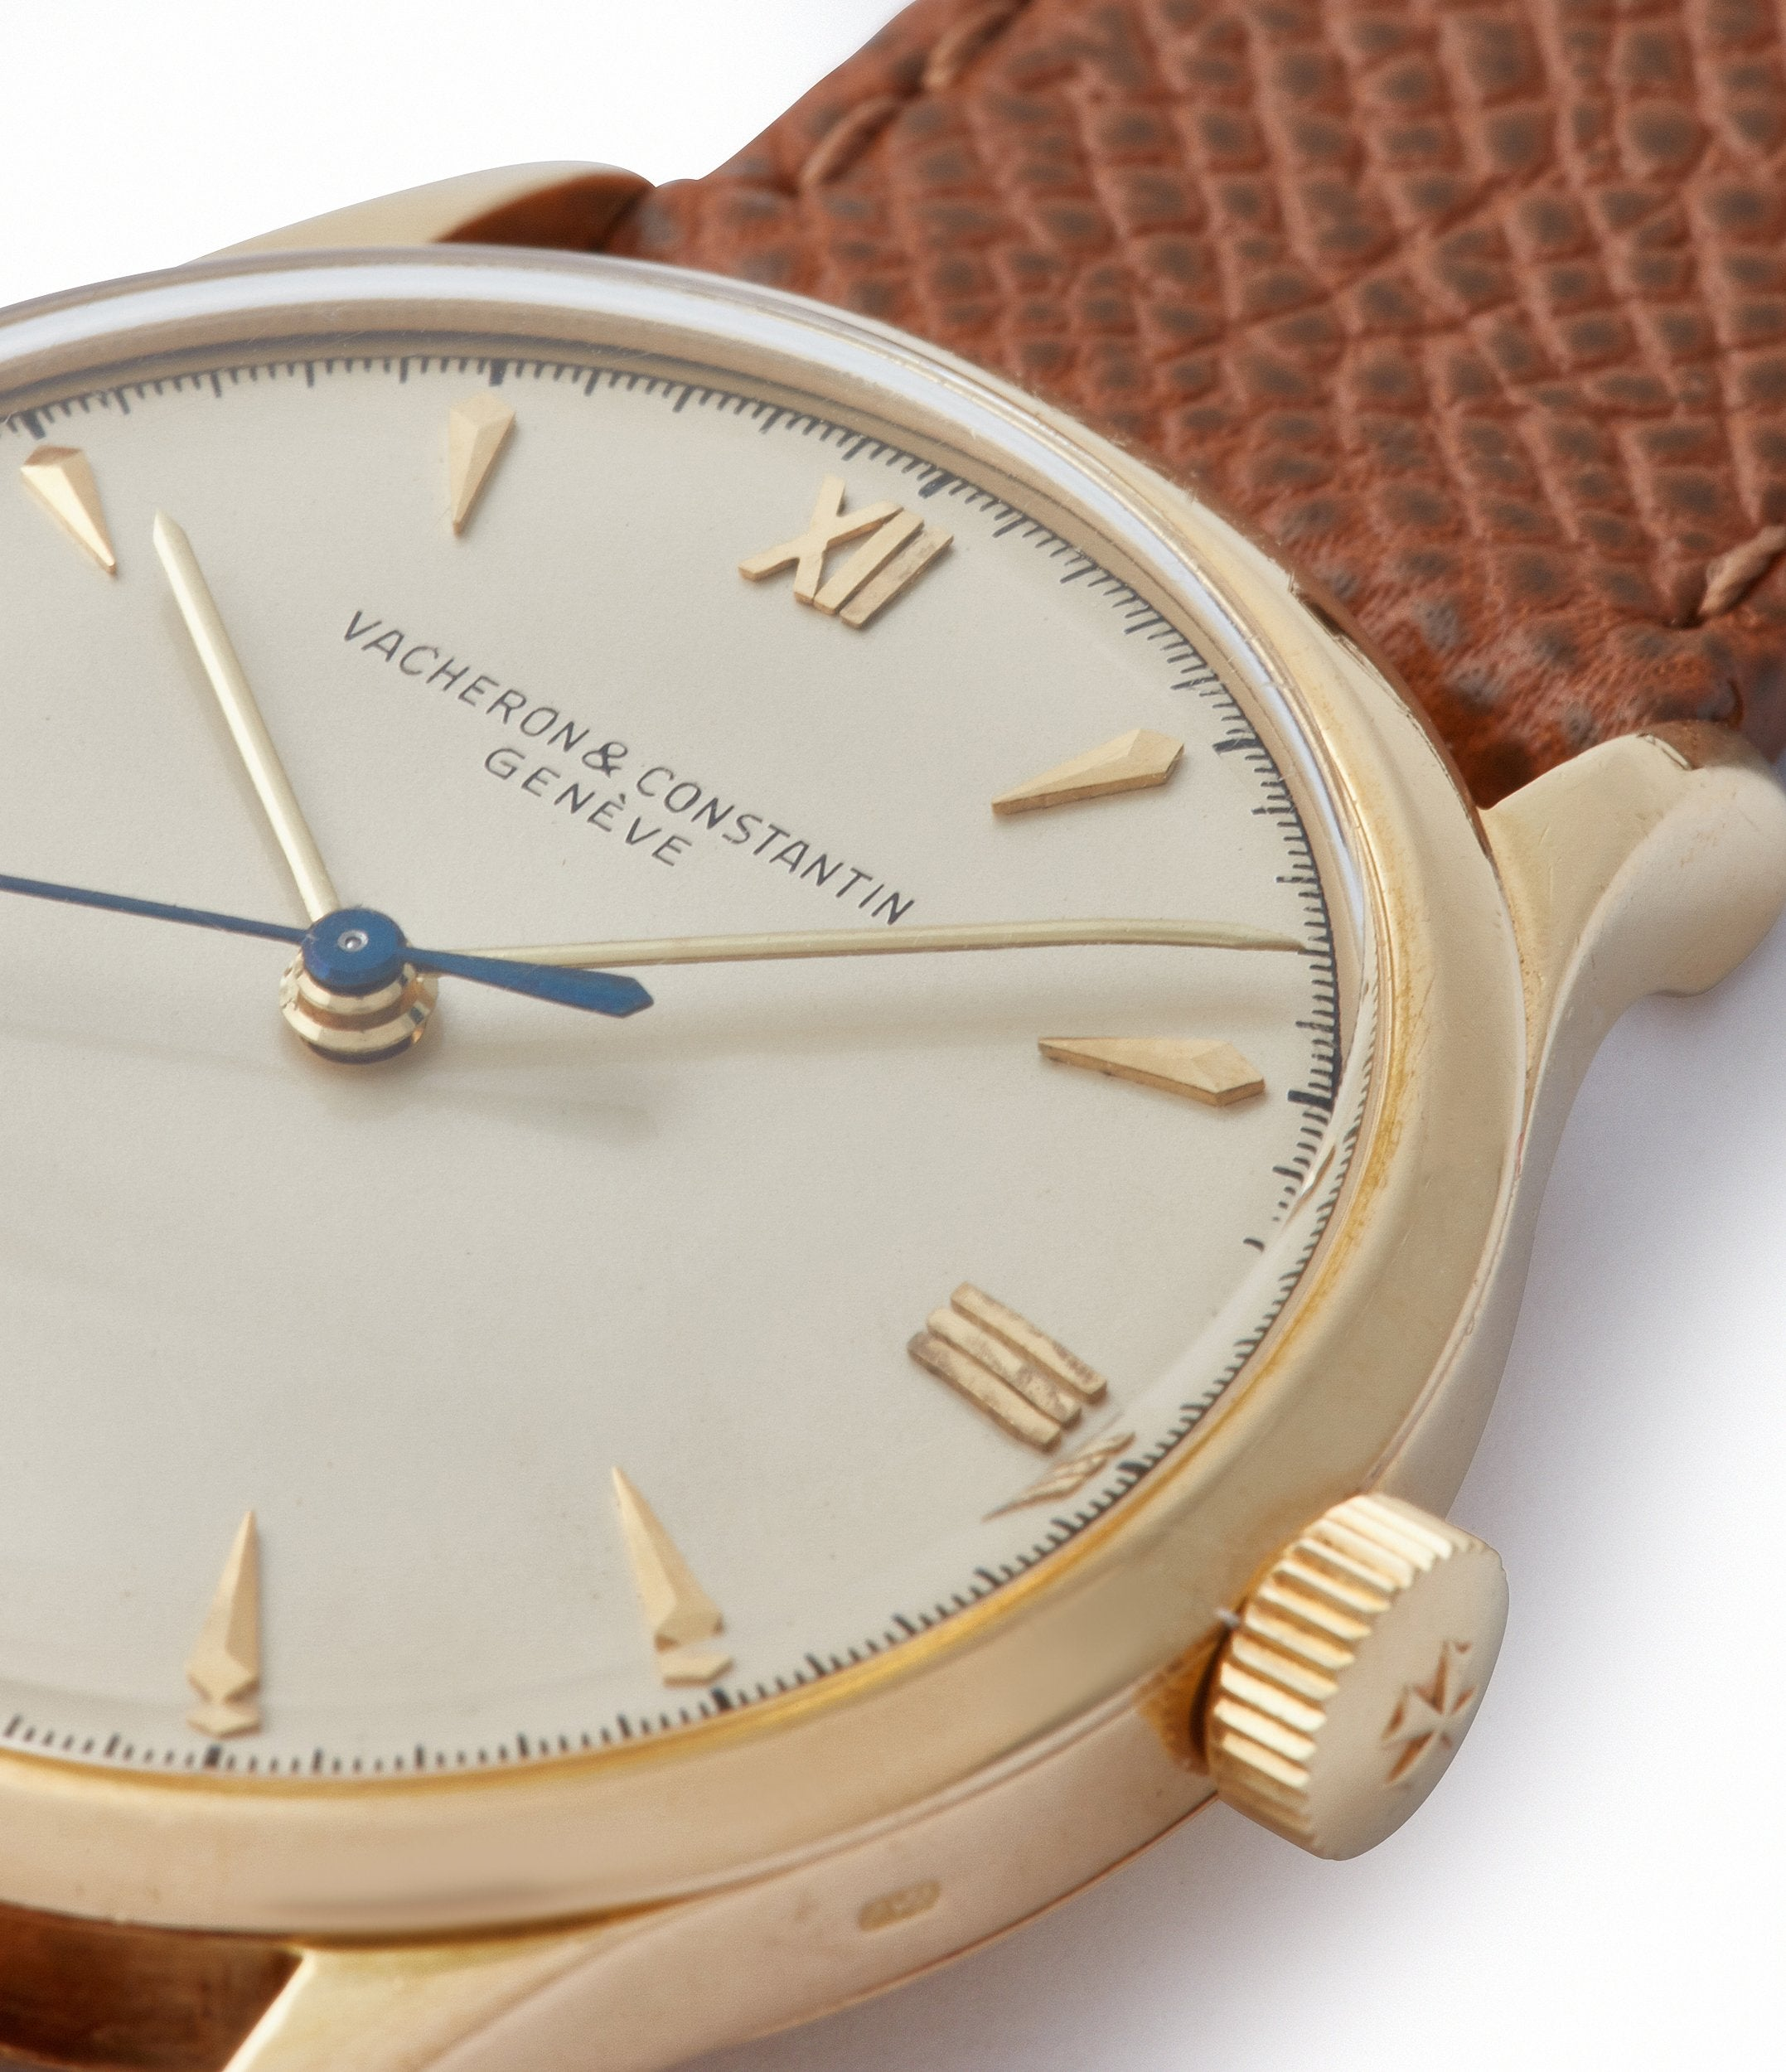 champagne dial Roman numerals Vacheron Constantin Ref. 4127 vintage time-only yellow gold dress watch for sale online A Collected Man London UK specialist rare watches